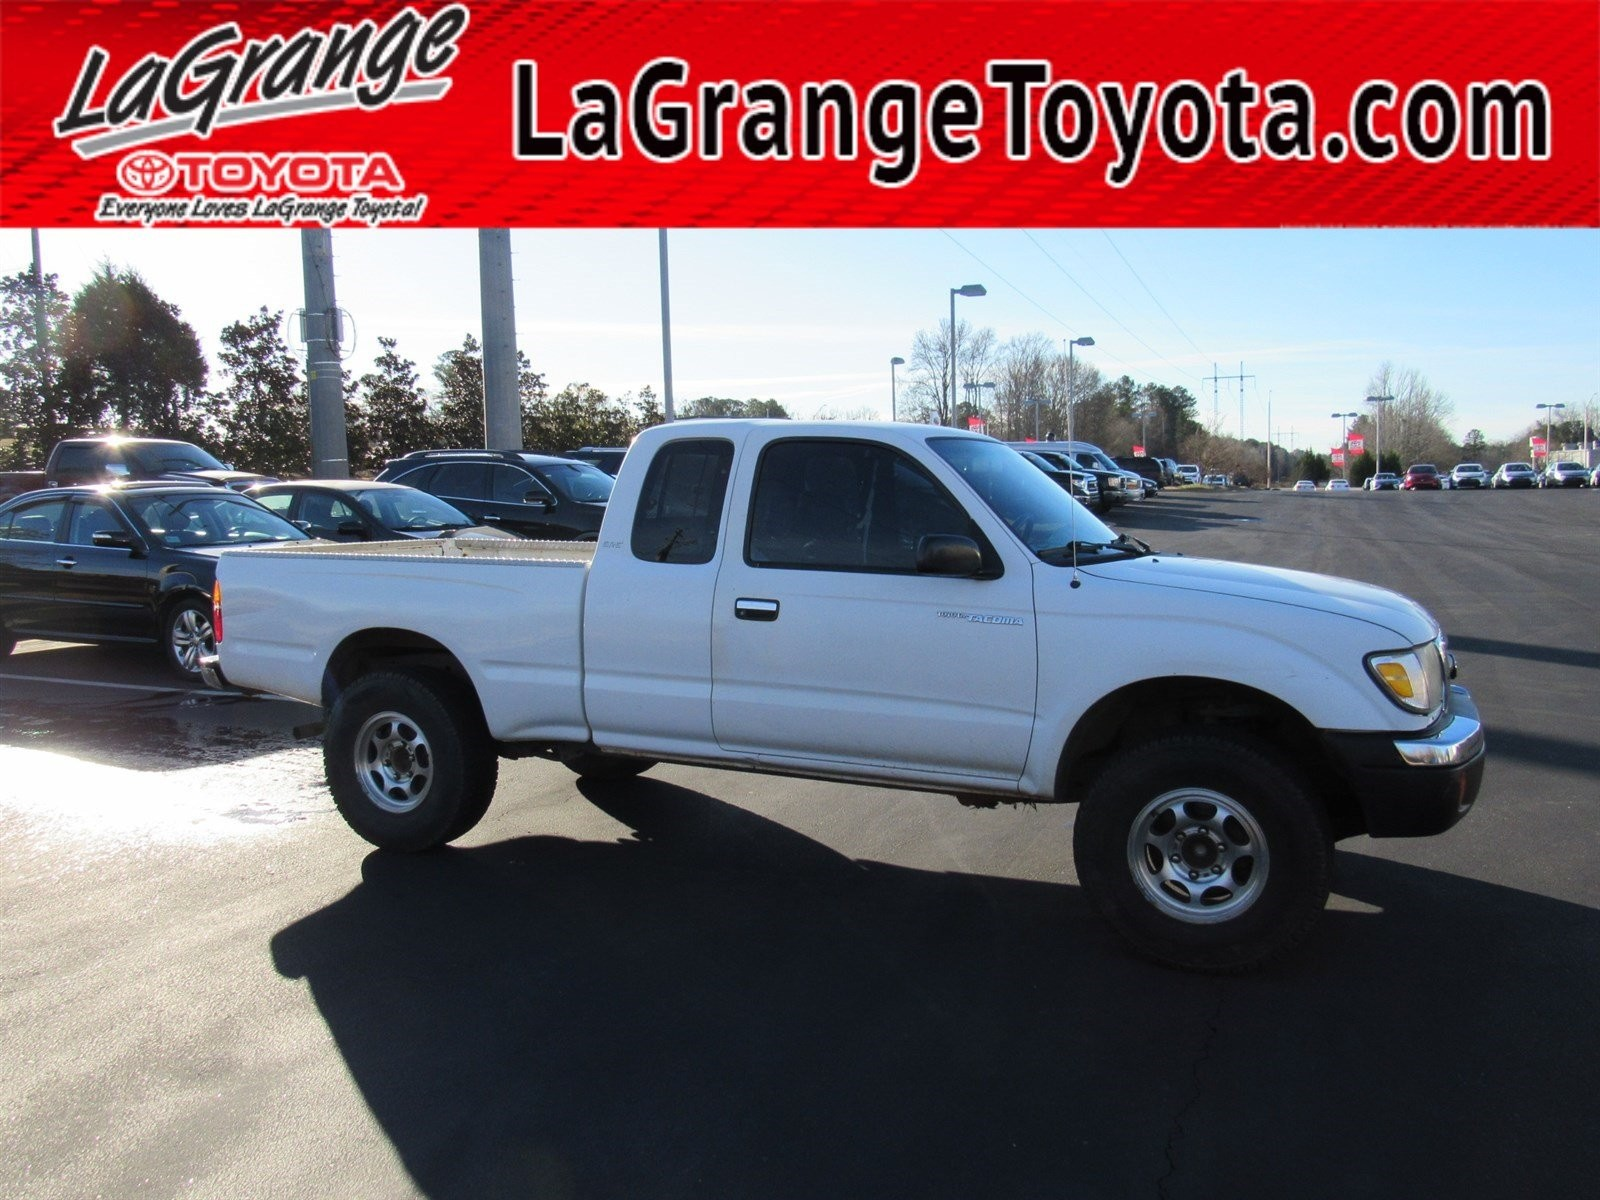 Toyota Tacoma Parts Diagram Pre Owned Toyota Ta A Xtracab Prerunner Auto Pickup Truck In Of Toyota Tacoma Parts Diagram on Ford F Door Diagram Trusted Wiring Diagrams Oh Of